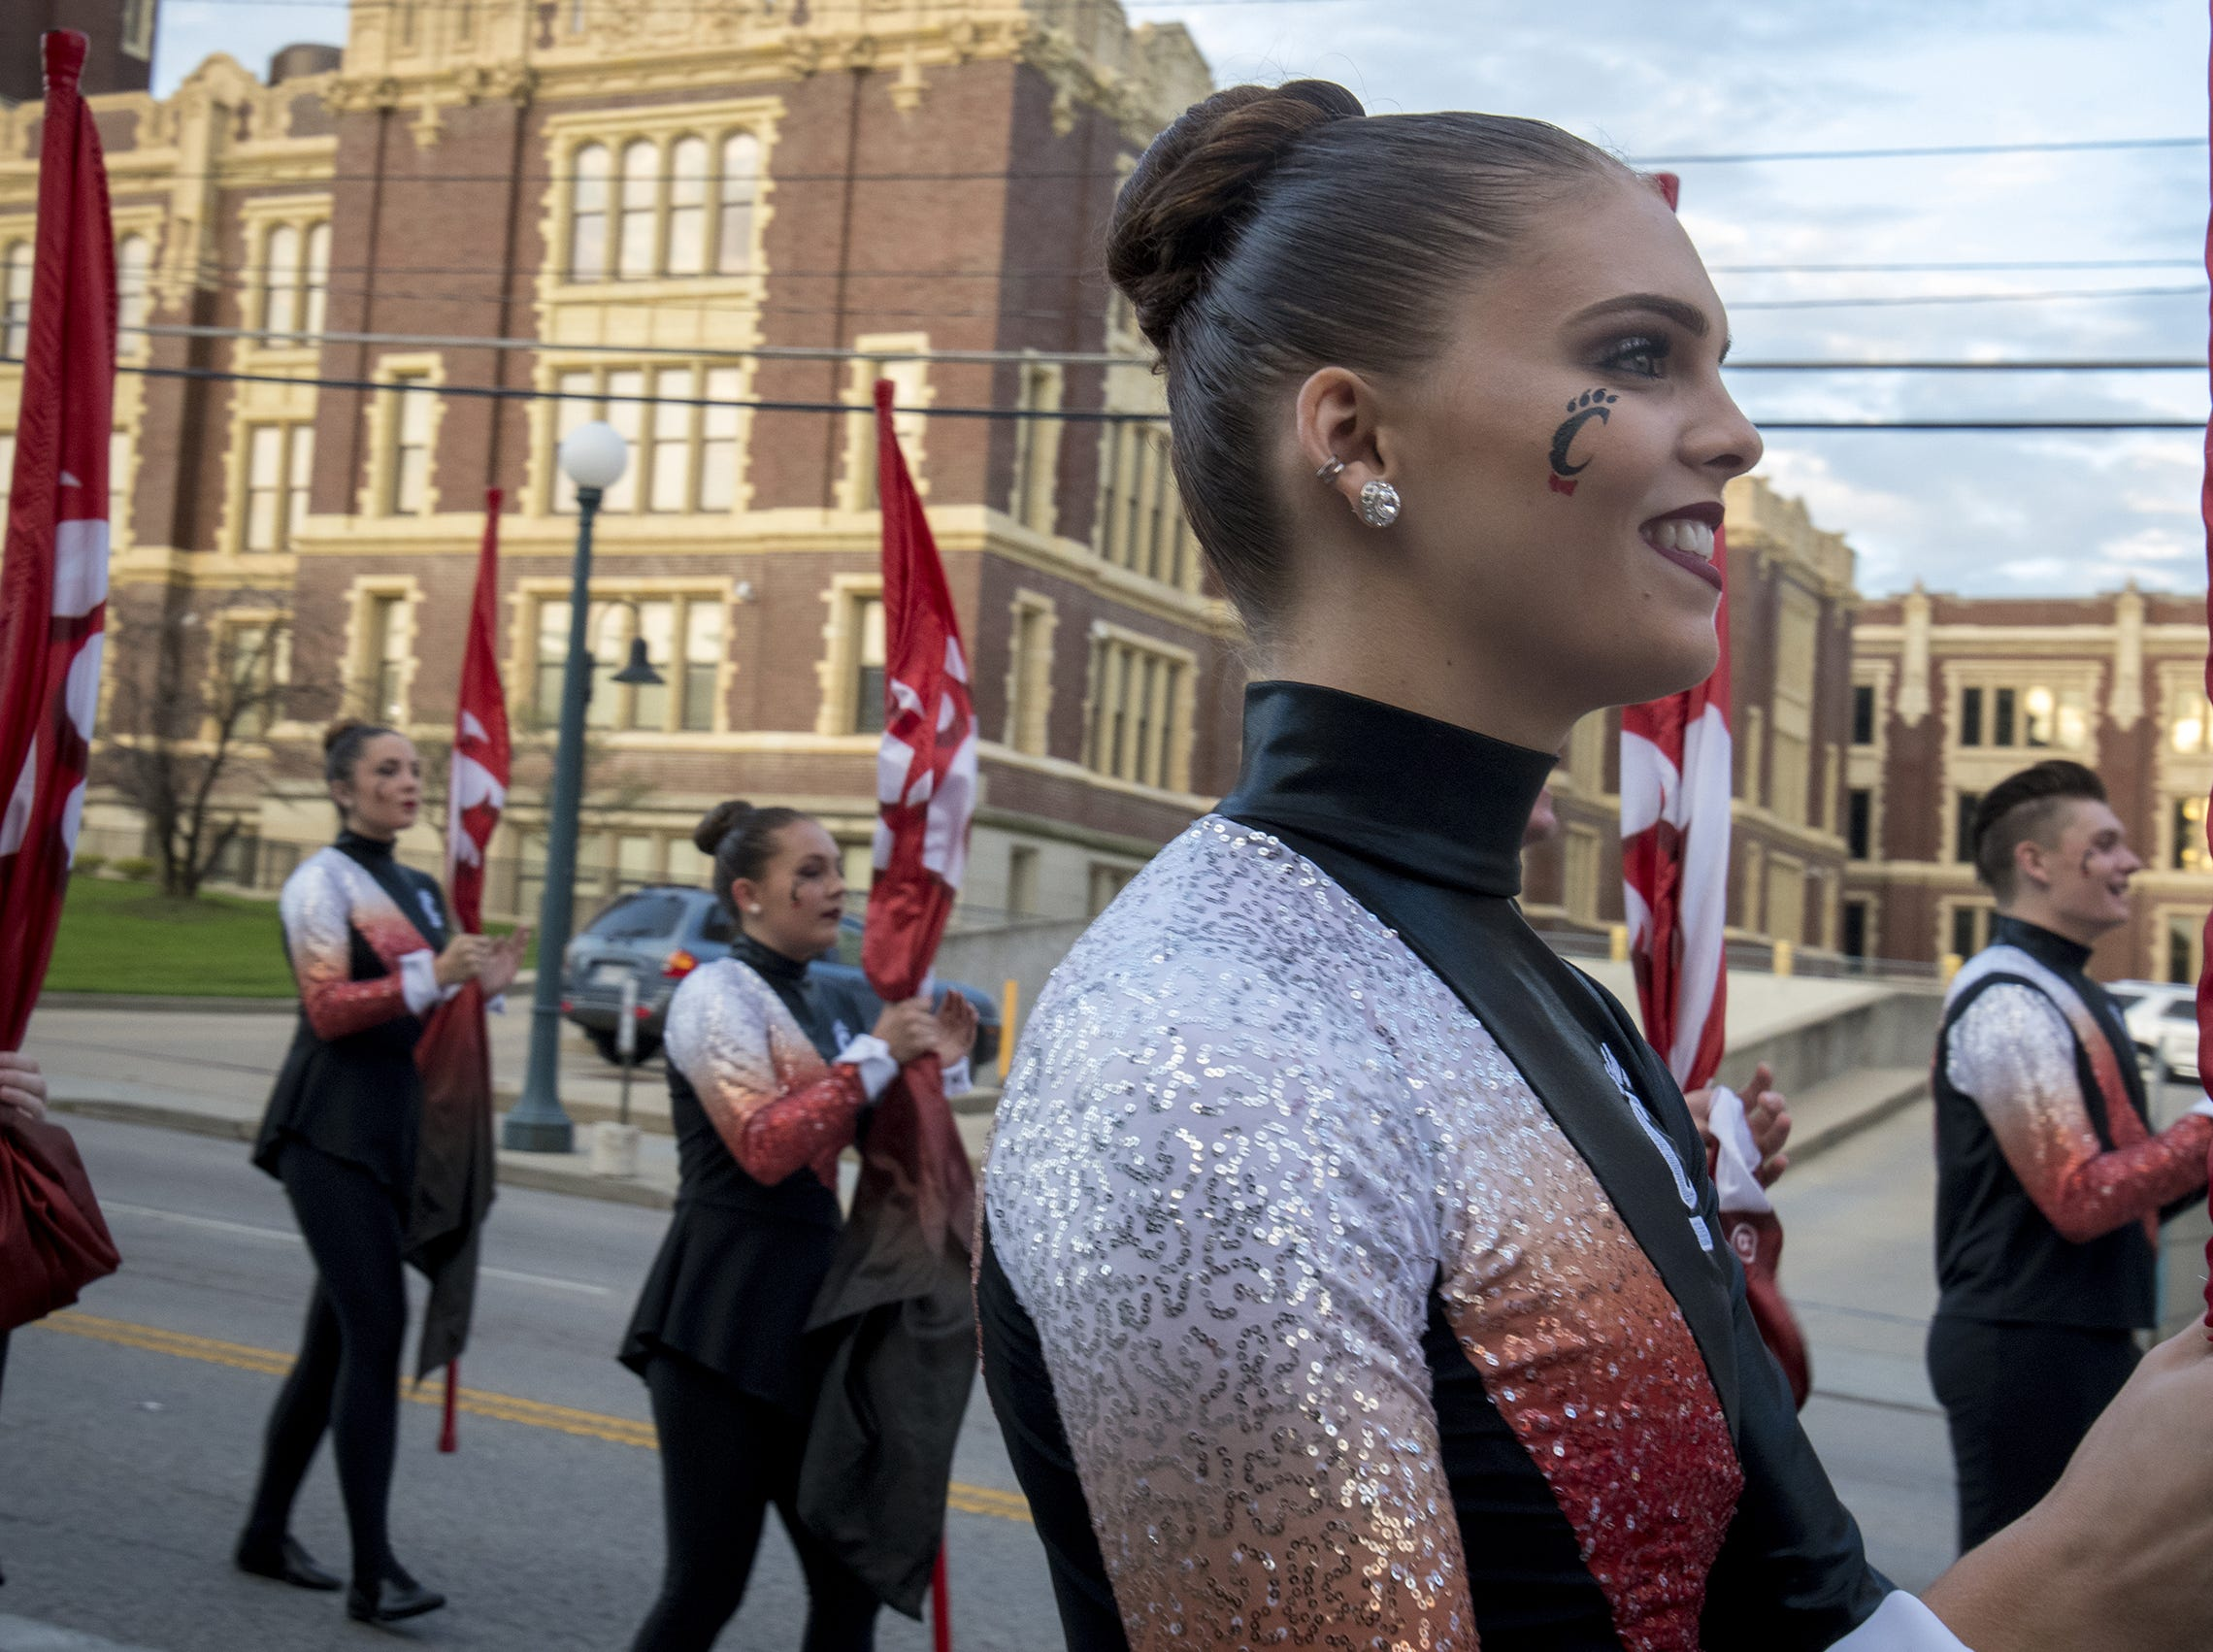 A color guard member marches down Clifton Avenue during the annual University of Cincinnati Homecoming parade.